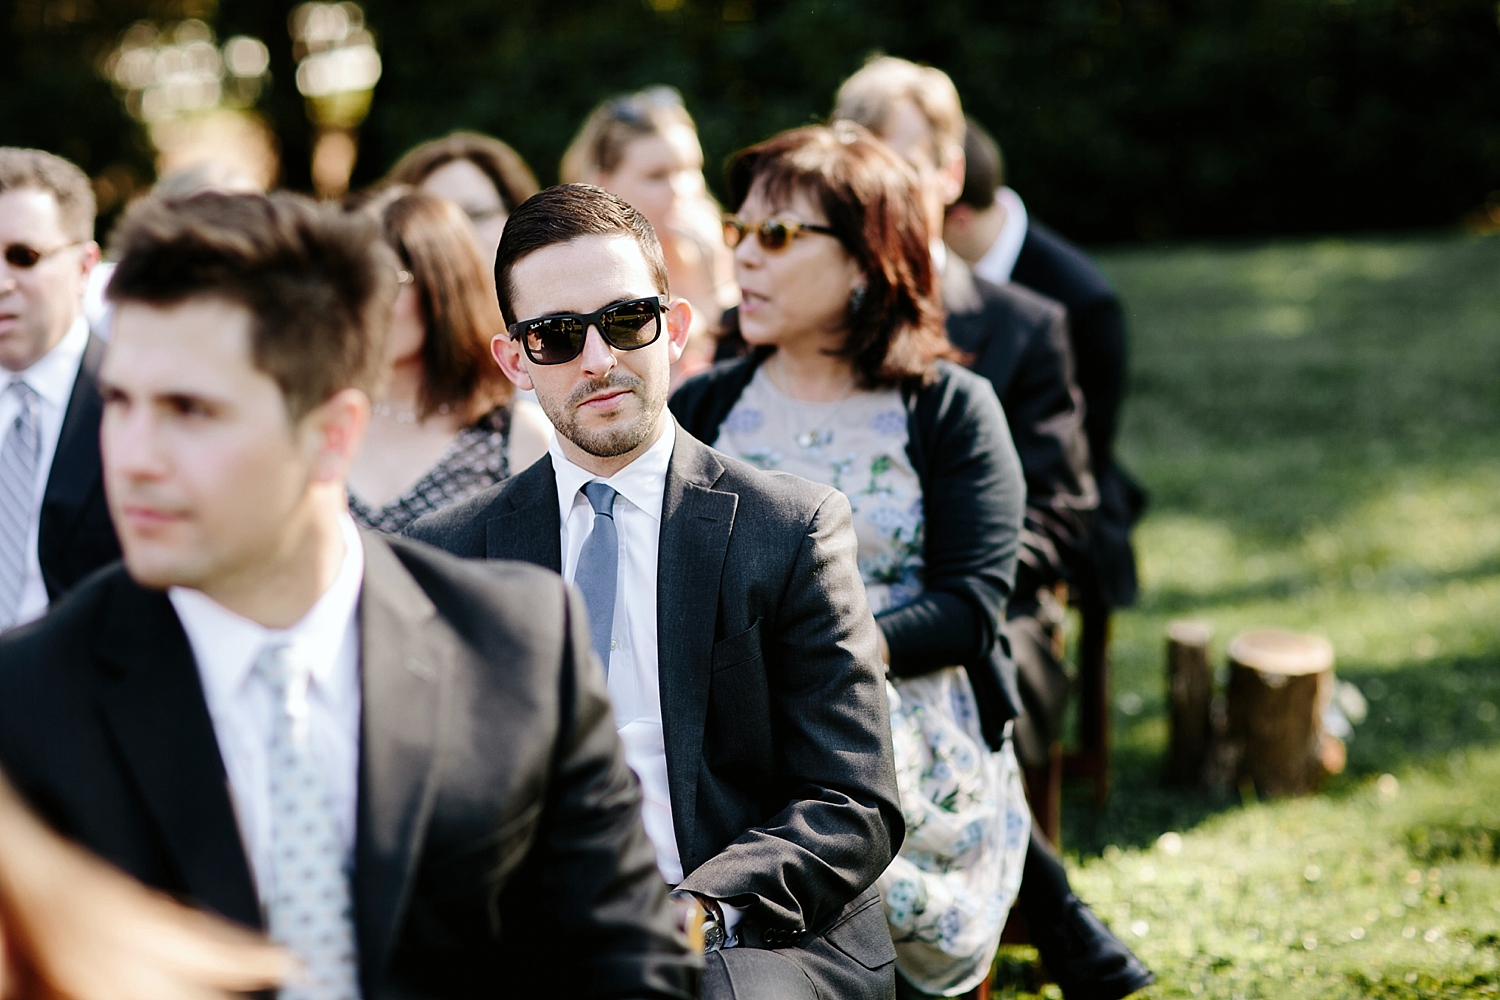 guest with sunglasses sitting in ceremony chair